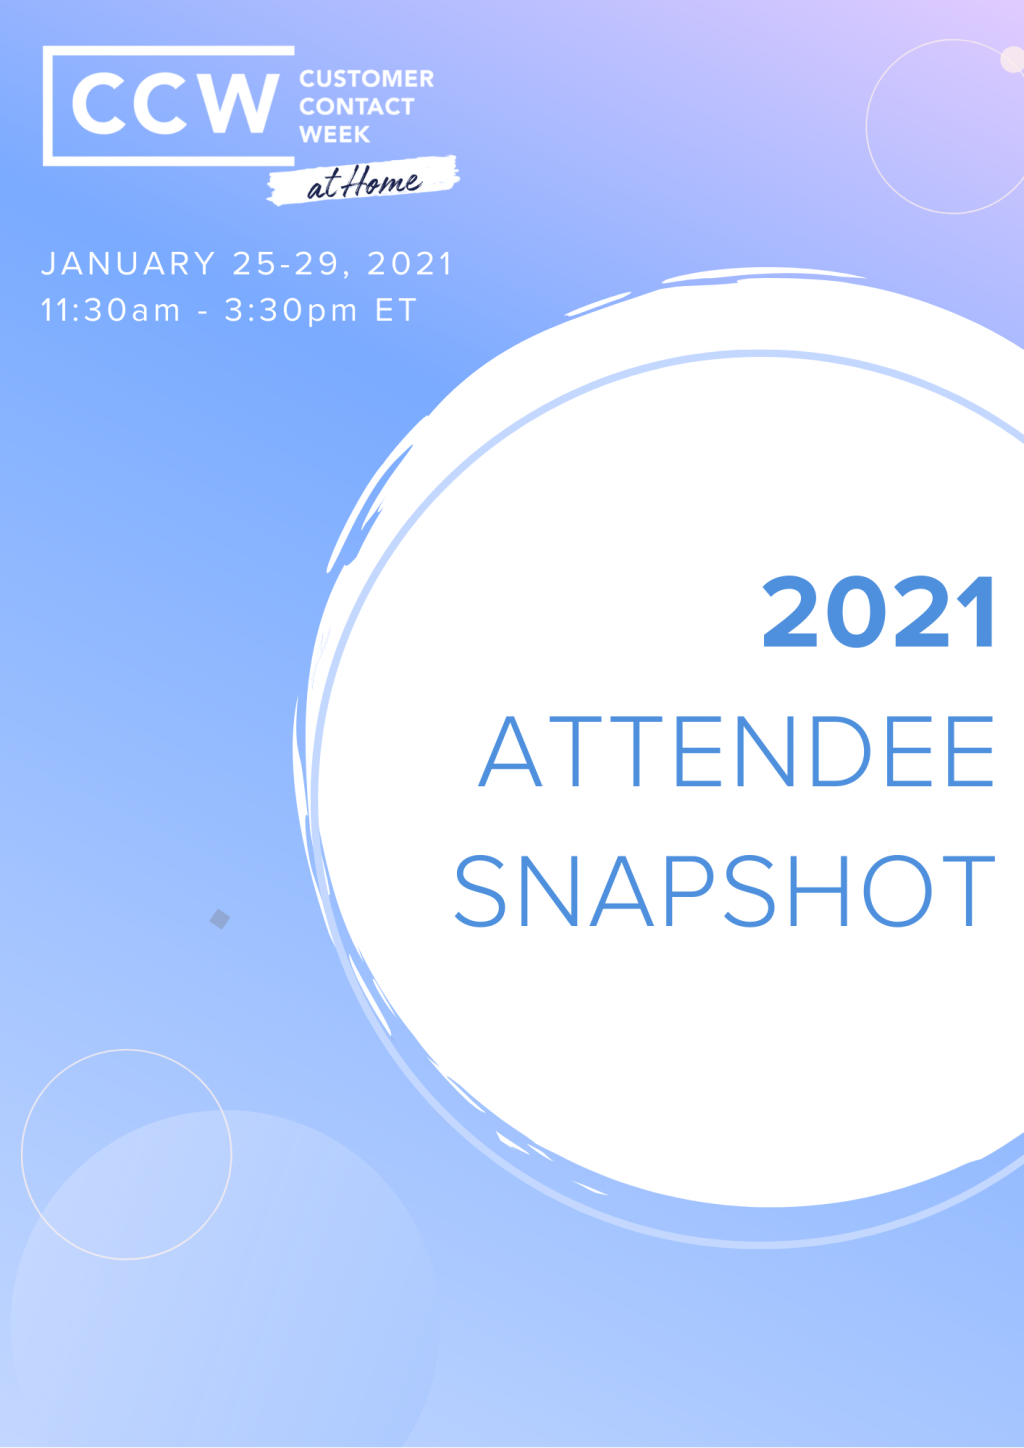 2021 Attendee Snapshot - CCW At Home